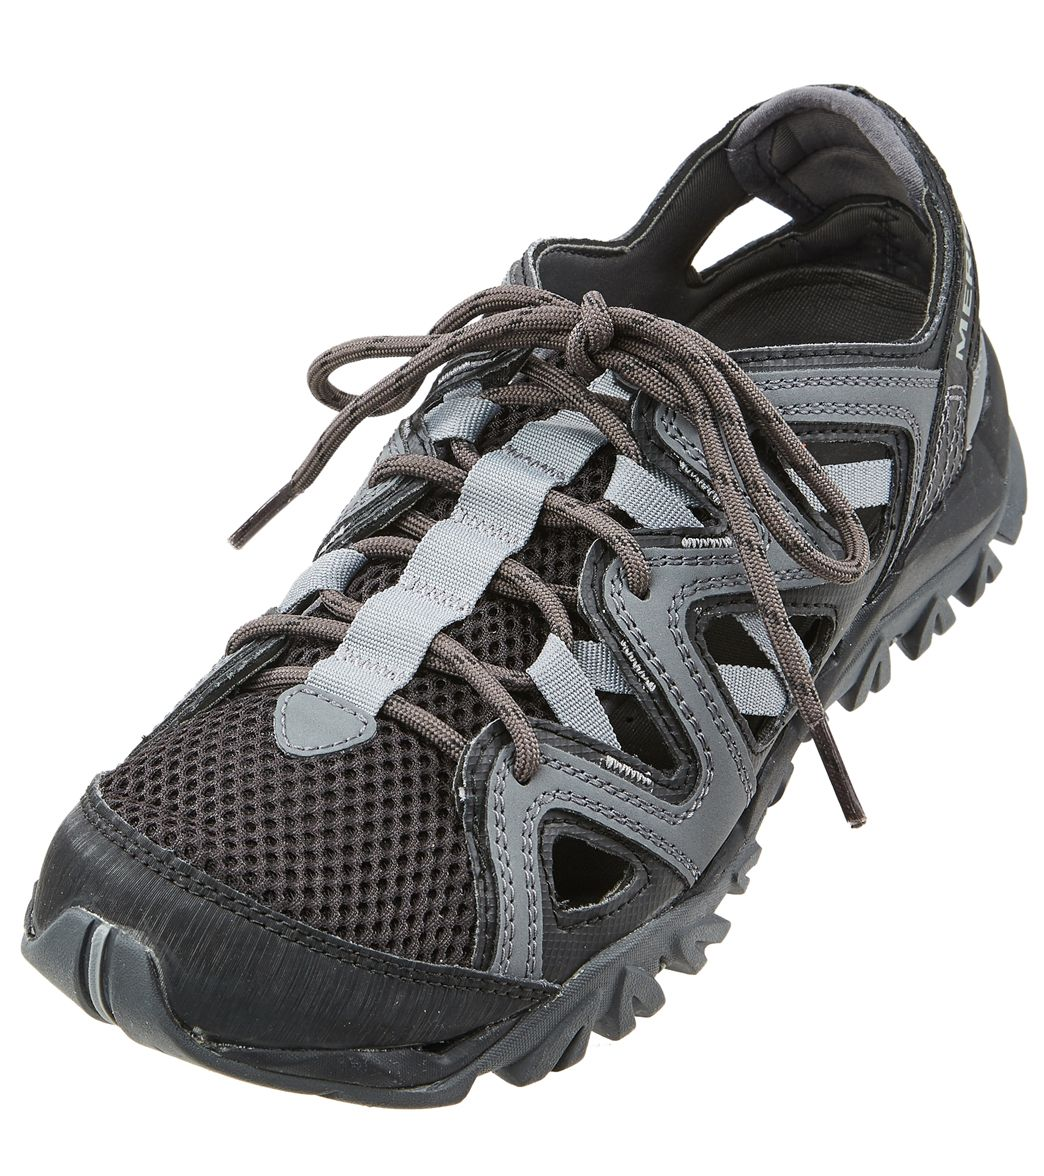 c387177f639983 Merrell Women's Tetrex Crest Wrap Water Shoe at SwimOutlet.com - Free  Shipping